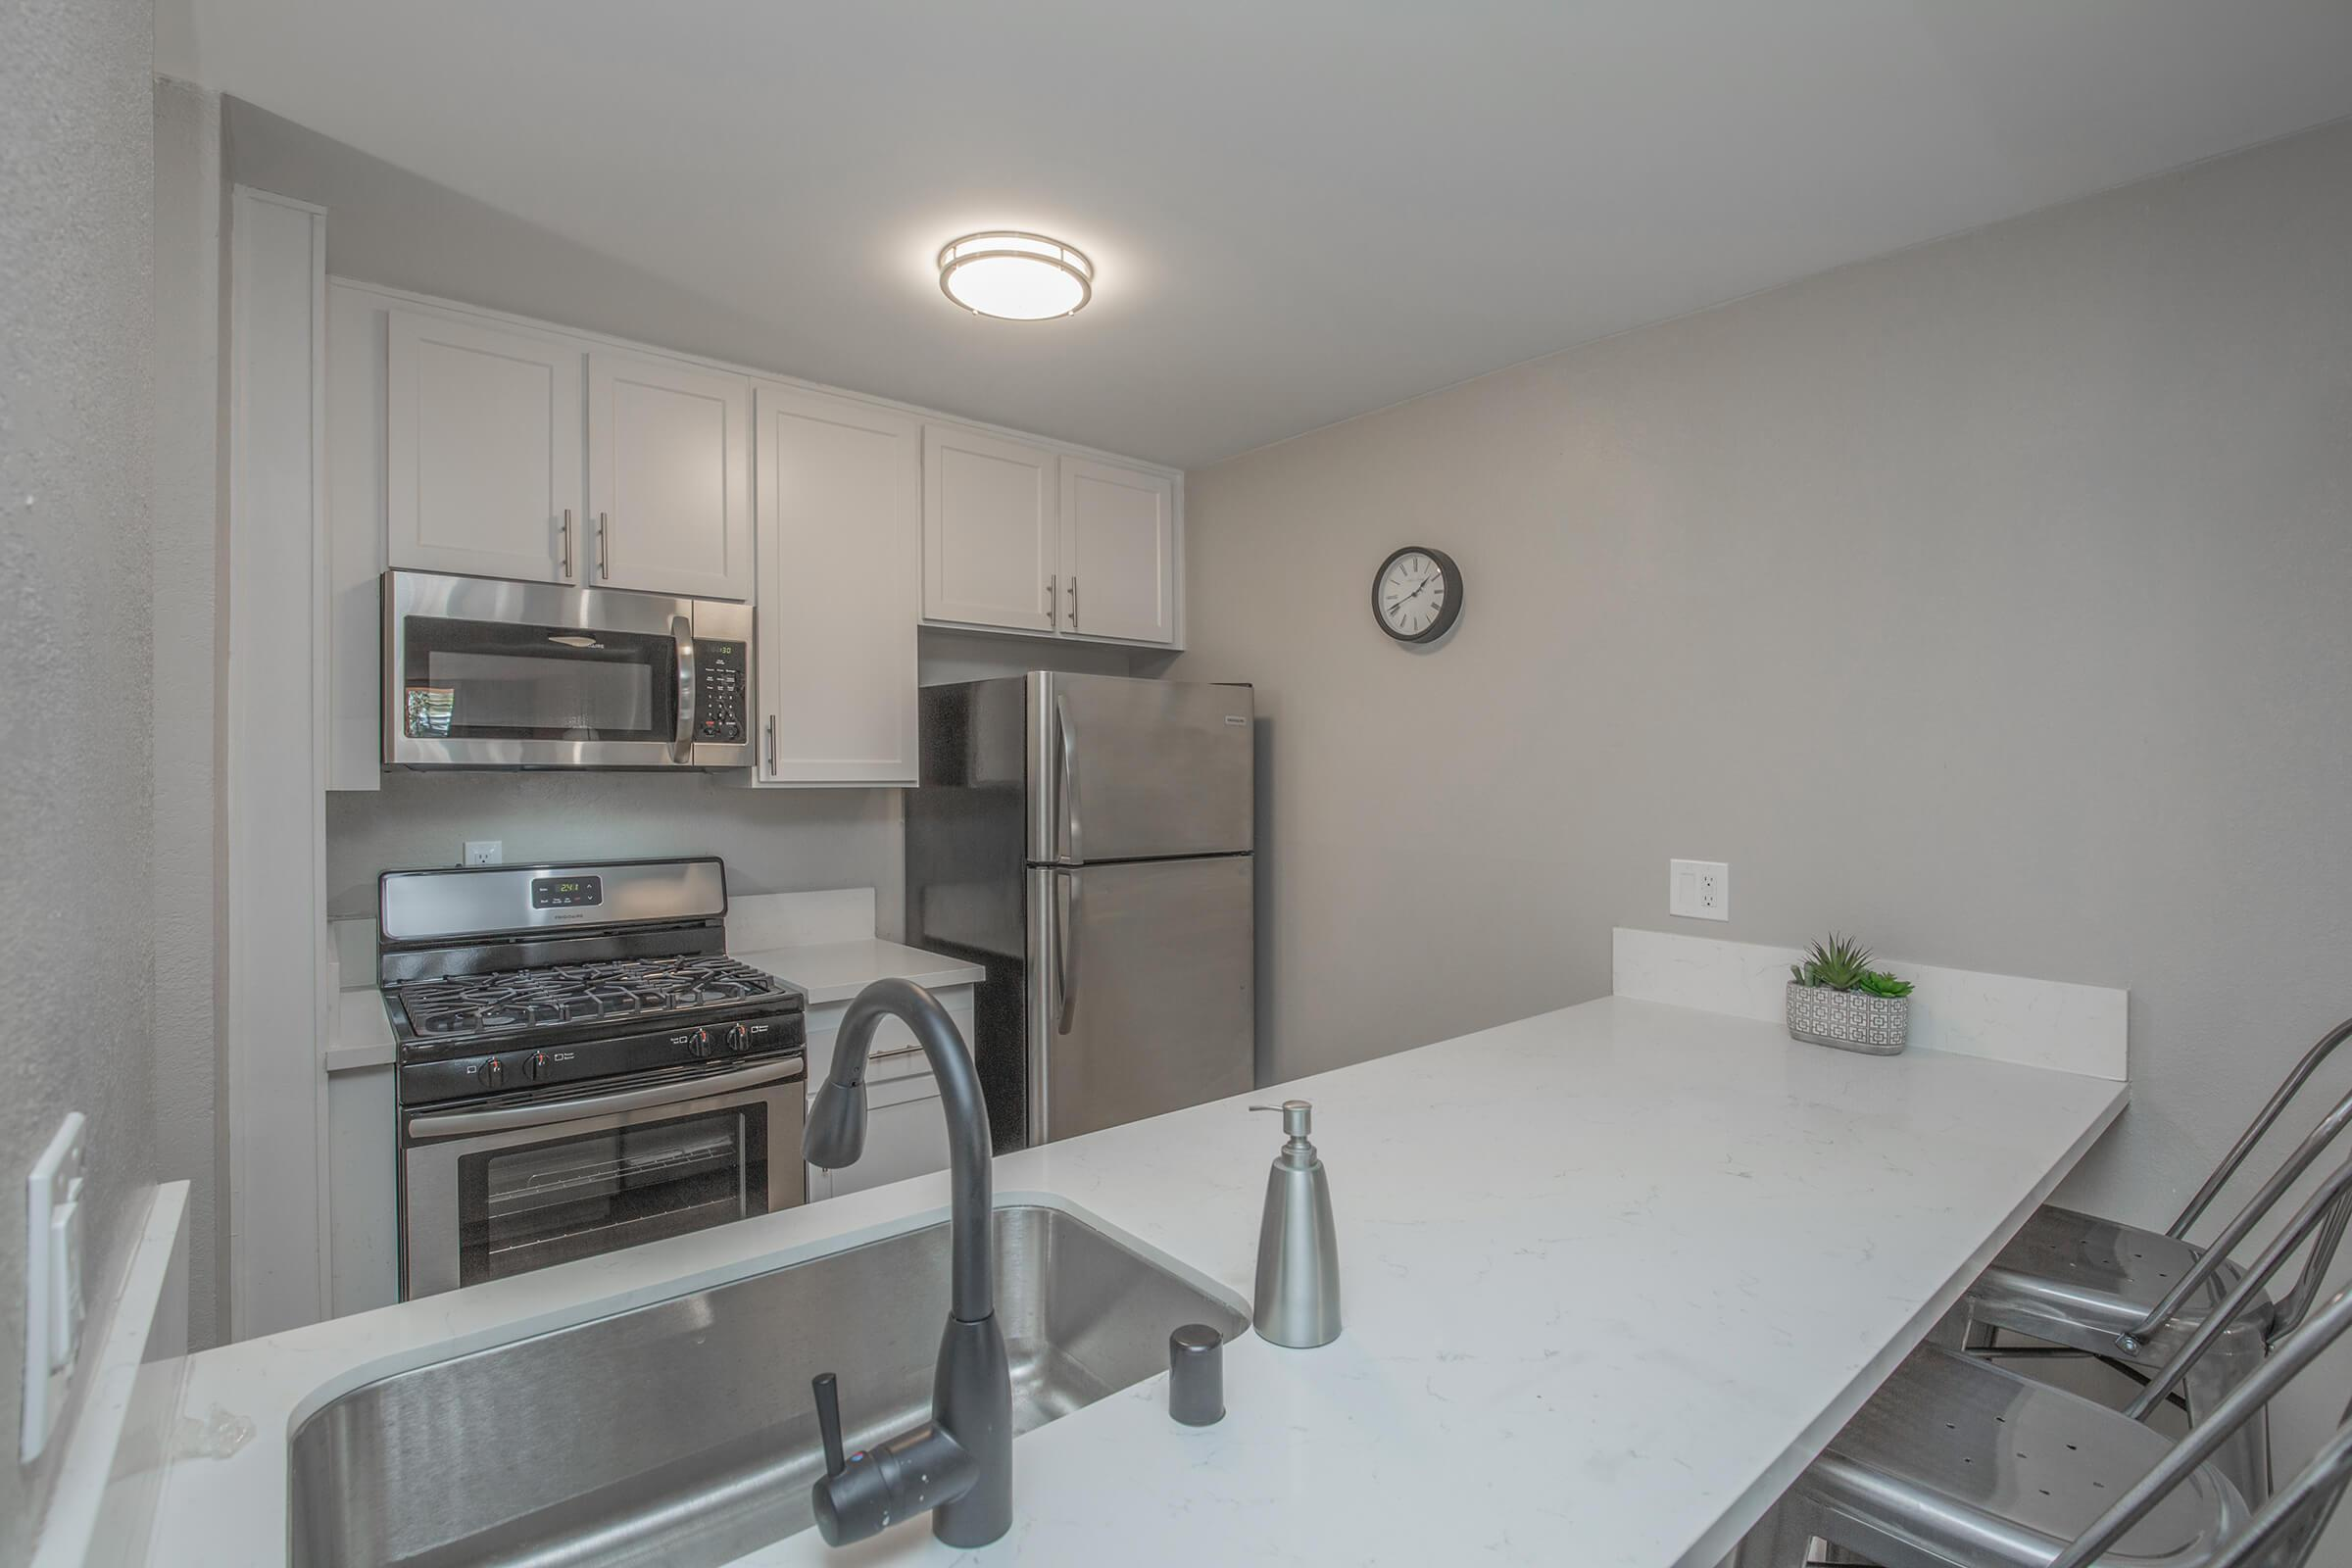 Glendale CA Apartments for Rent -Windsor Villas Apartments Kitchen